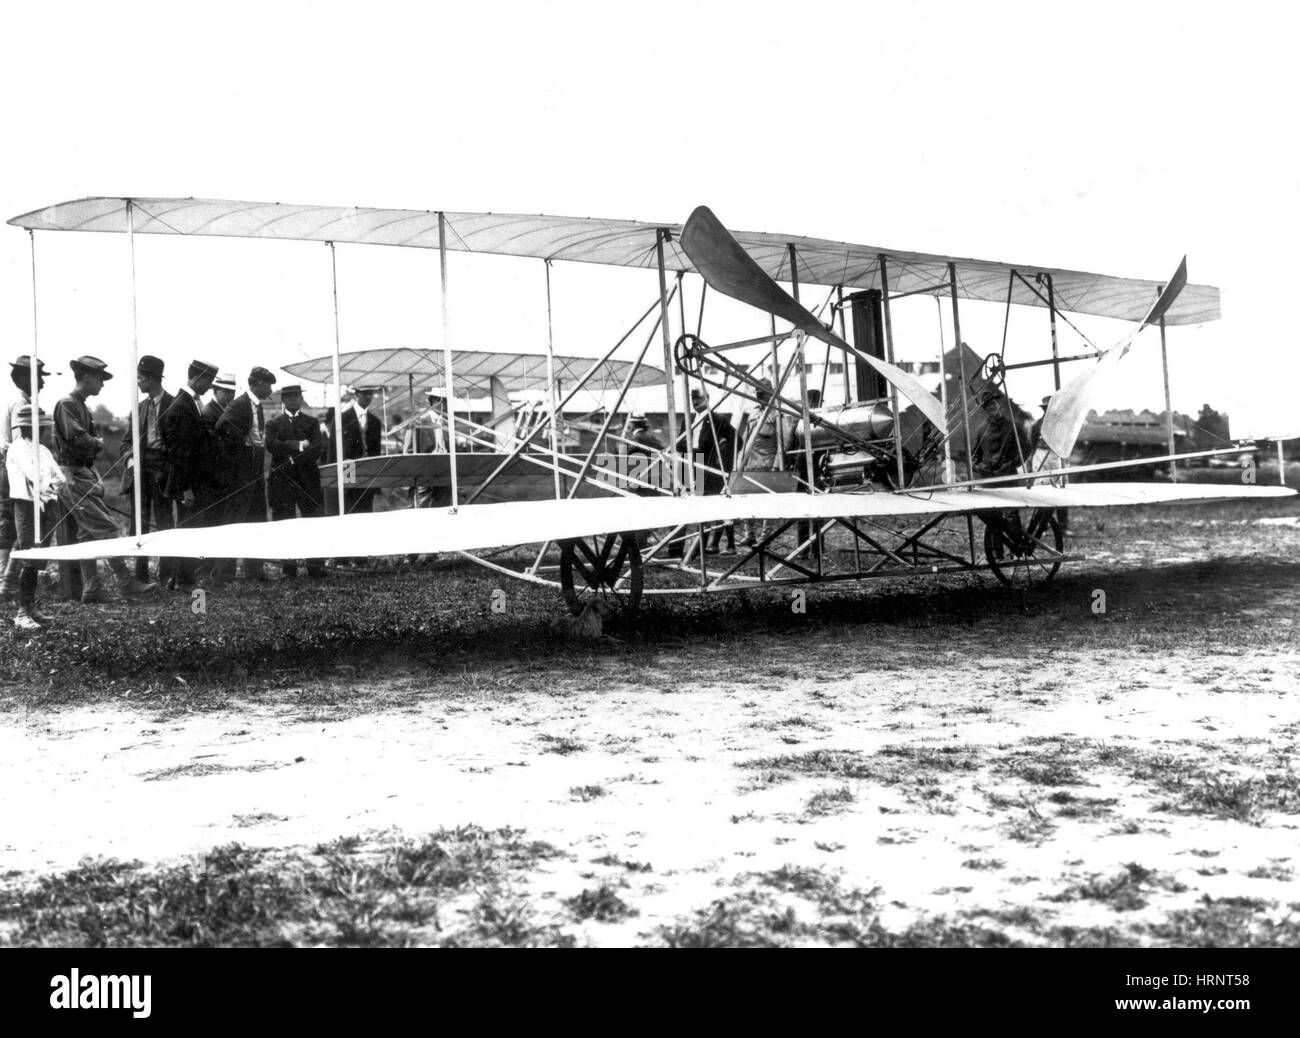 Militaire d'abord Wright Flyer, Signal Corps Avion n° 1, 1908 Banque D'Images